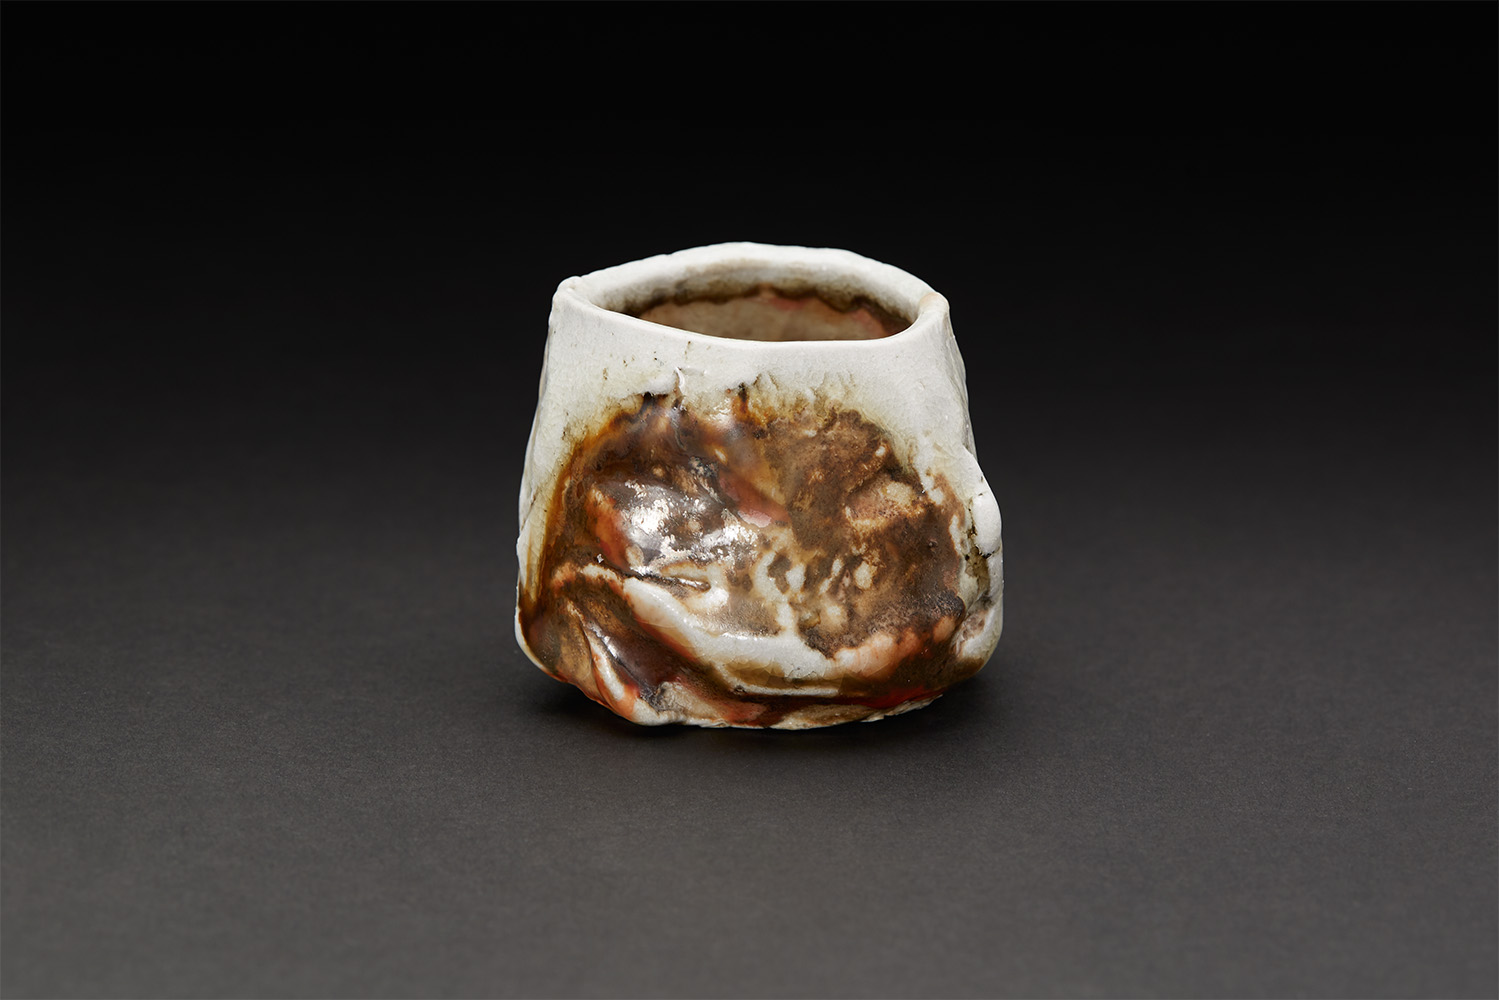 Lucien M. Koonce    Guinomi  , 2017 Hand carved and hollowed (kurinuki technique) stoneware clay and natural ash glaze; wood fired (anagama) for five days to c/12 2.5 x 2.5 x 2.5 inches 6.4 x 6.4 x 6.4 cm LKo 7